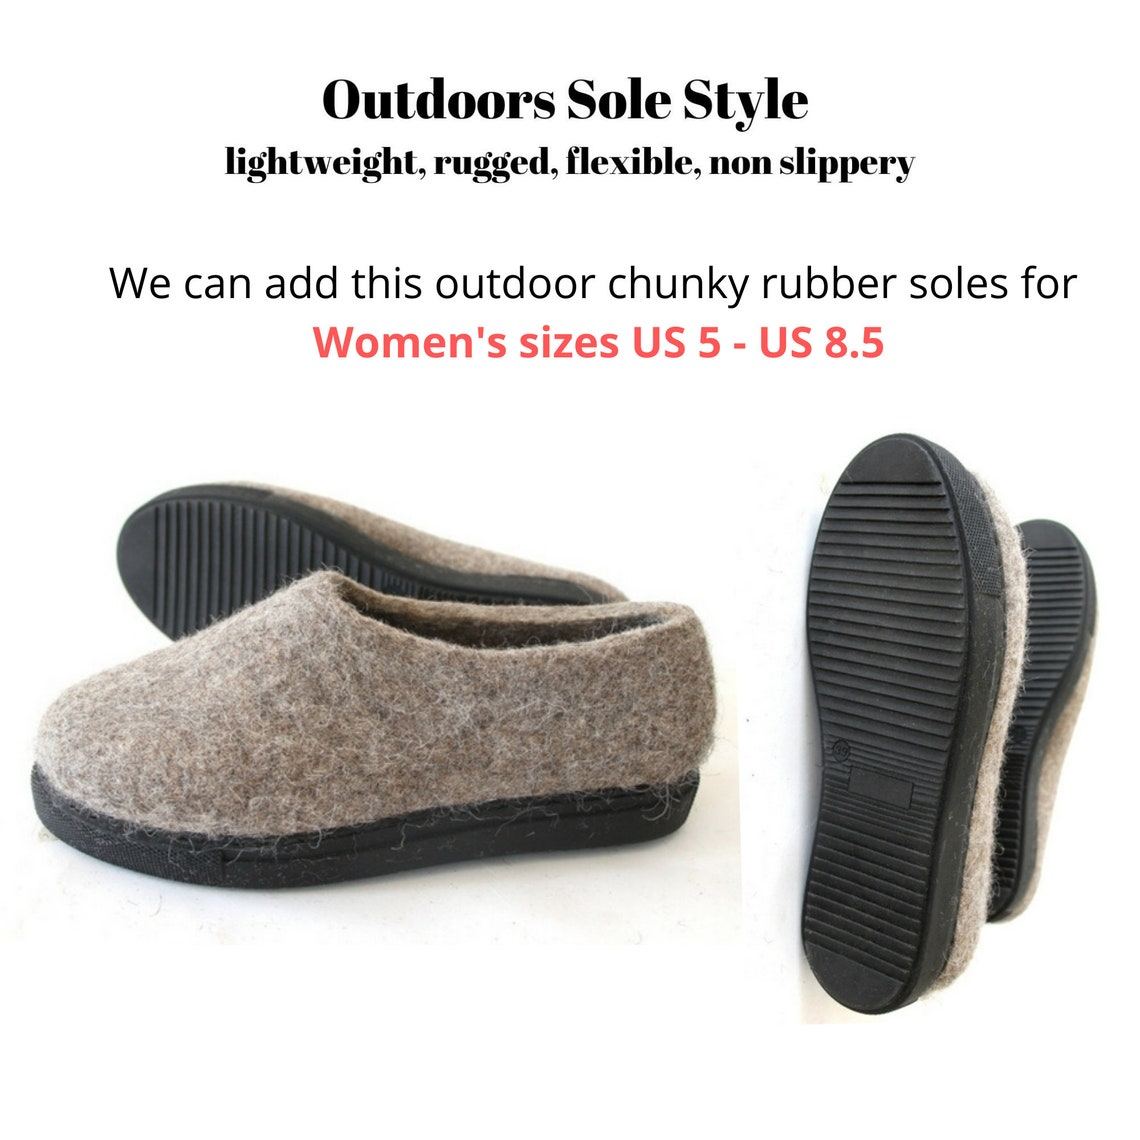 Classic Blue natural wool house shoes for men, felted slippers for cold feet, with cork or rubber soles. Women Men Spring Gift Ideas